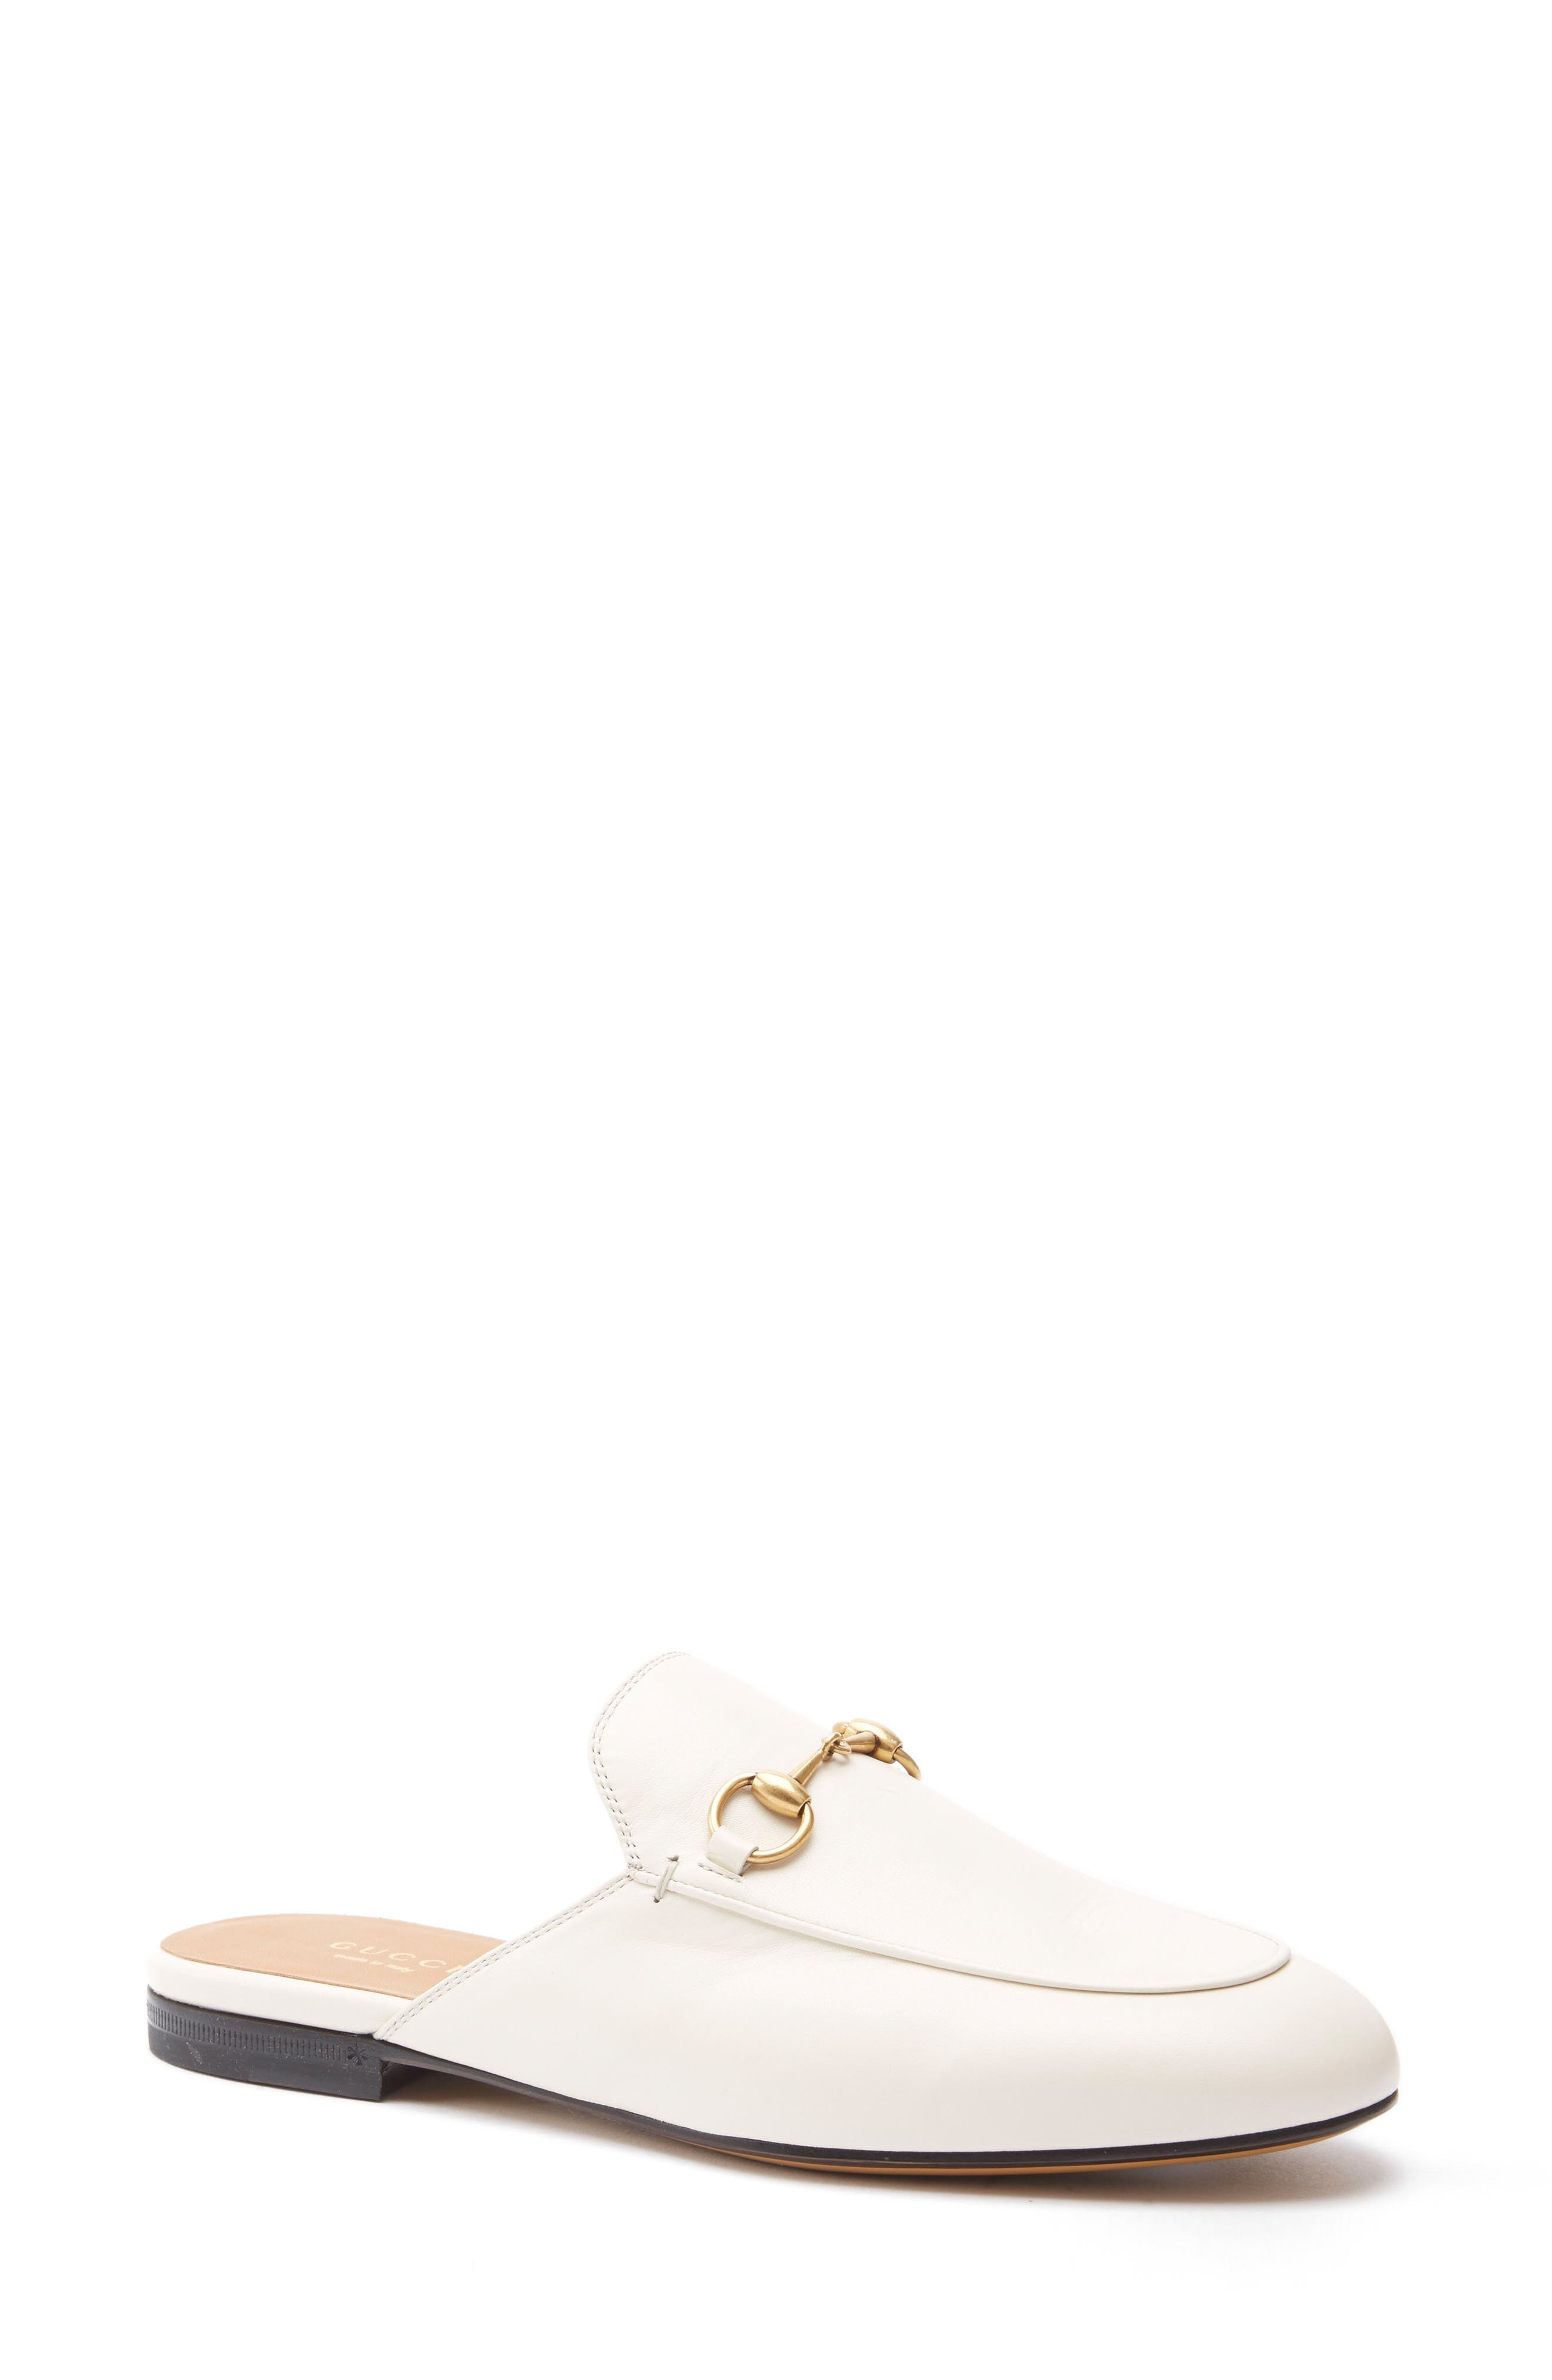 gucci shoes white. main image - gucci princetown loafer mule (women) shoes white e